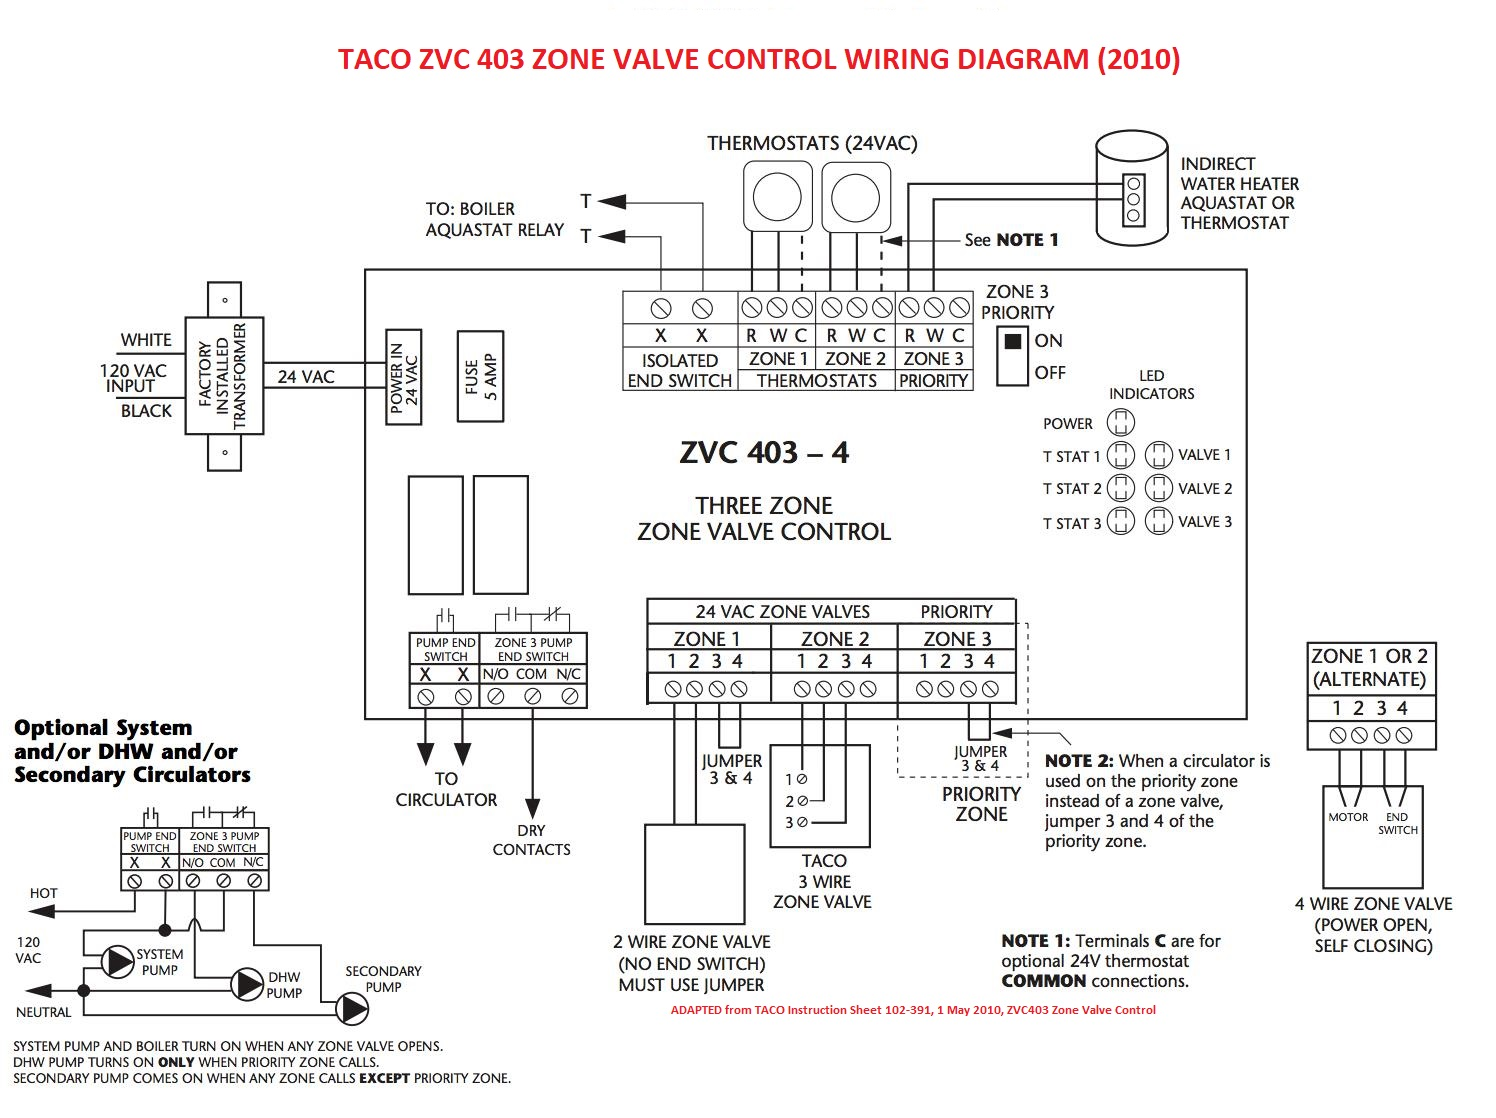 Zone Valve Wiring Manuals Installation & Instructions: Guide to heating  system zone valves - Zone valve installation, inspection, repair guide | Hydronic Zone Valve Wiring Diagram |  | InspectApedia.com